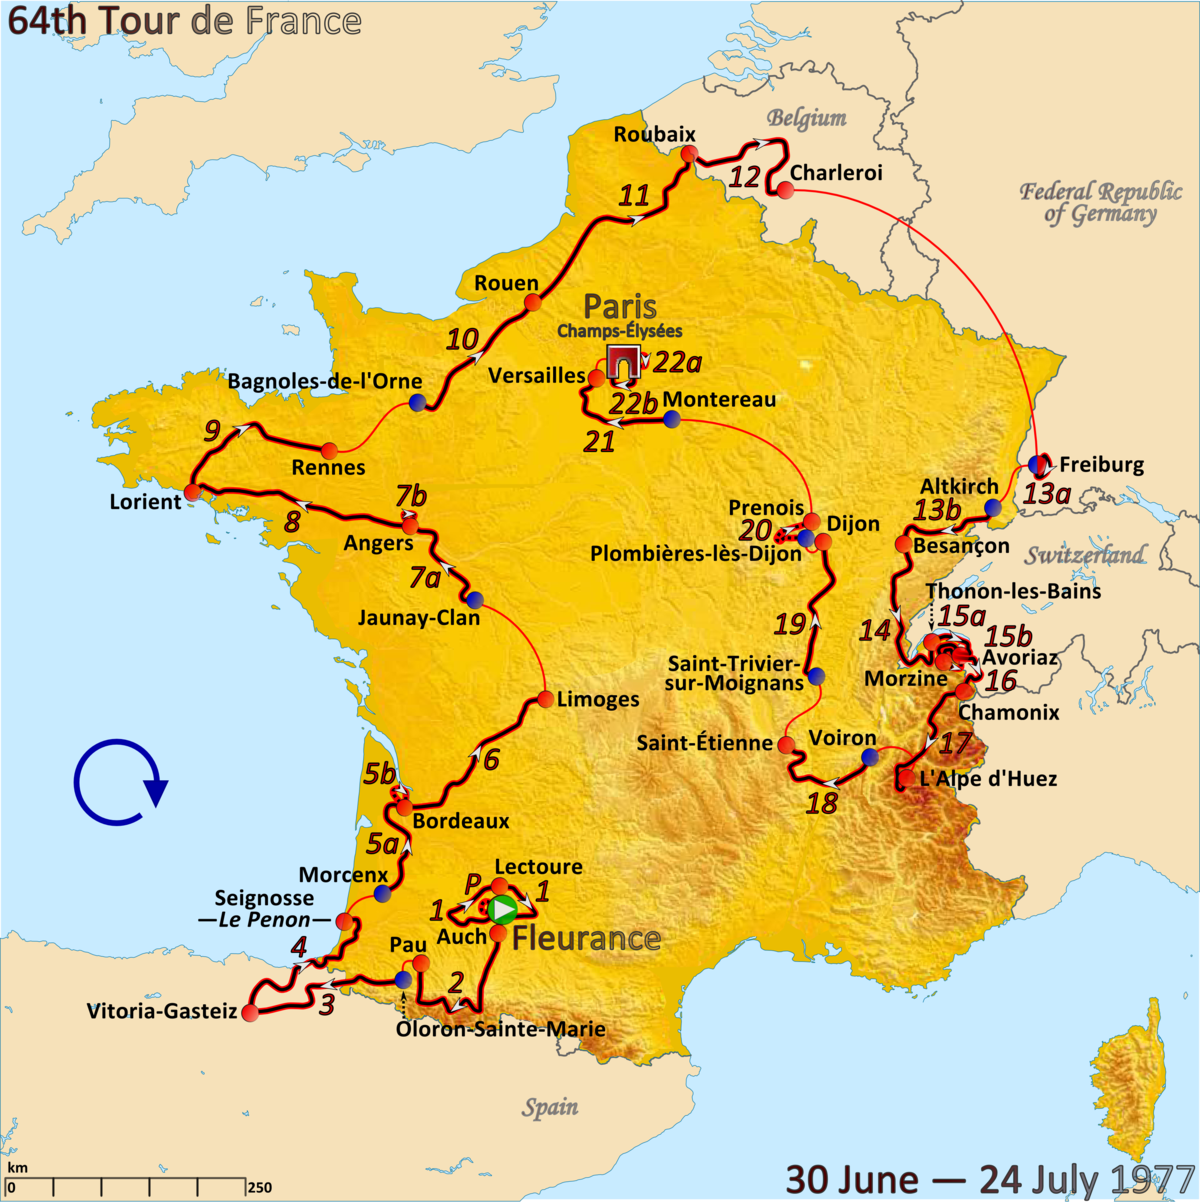 Tour De France Route Through Paris